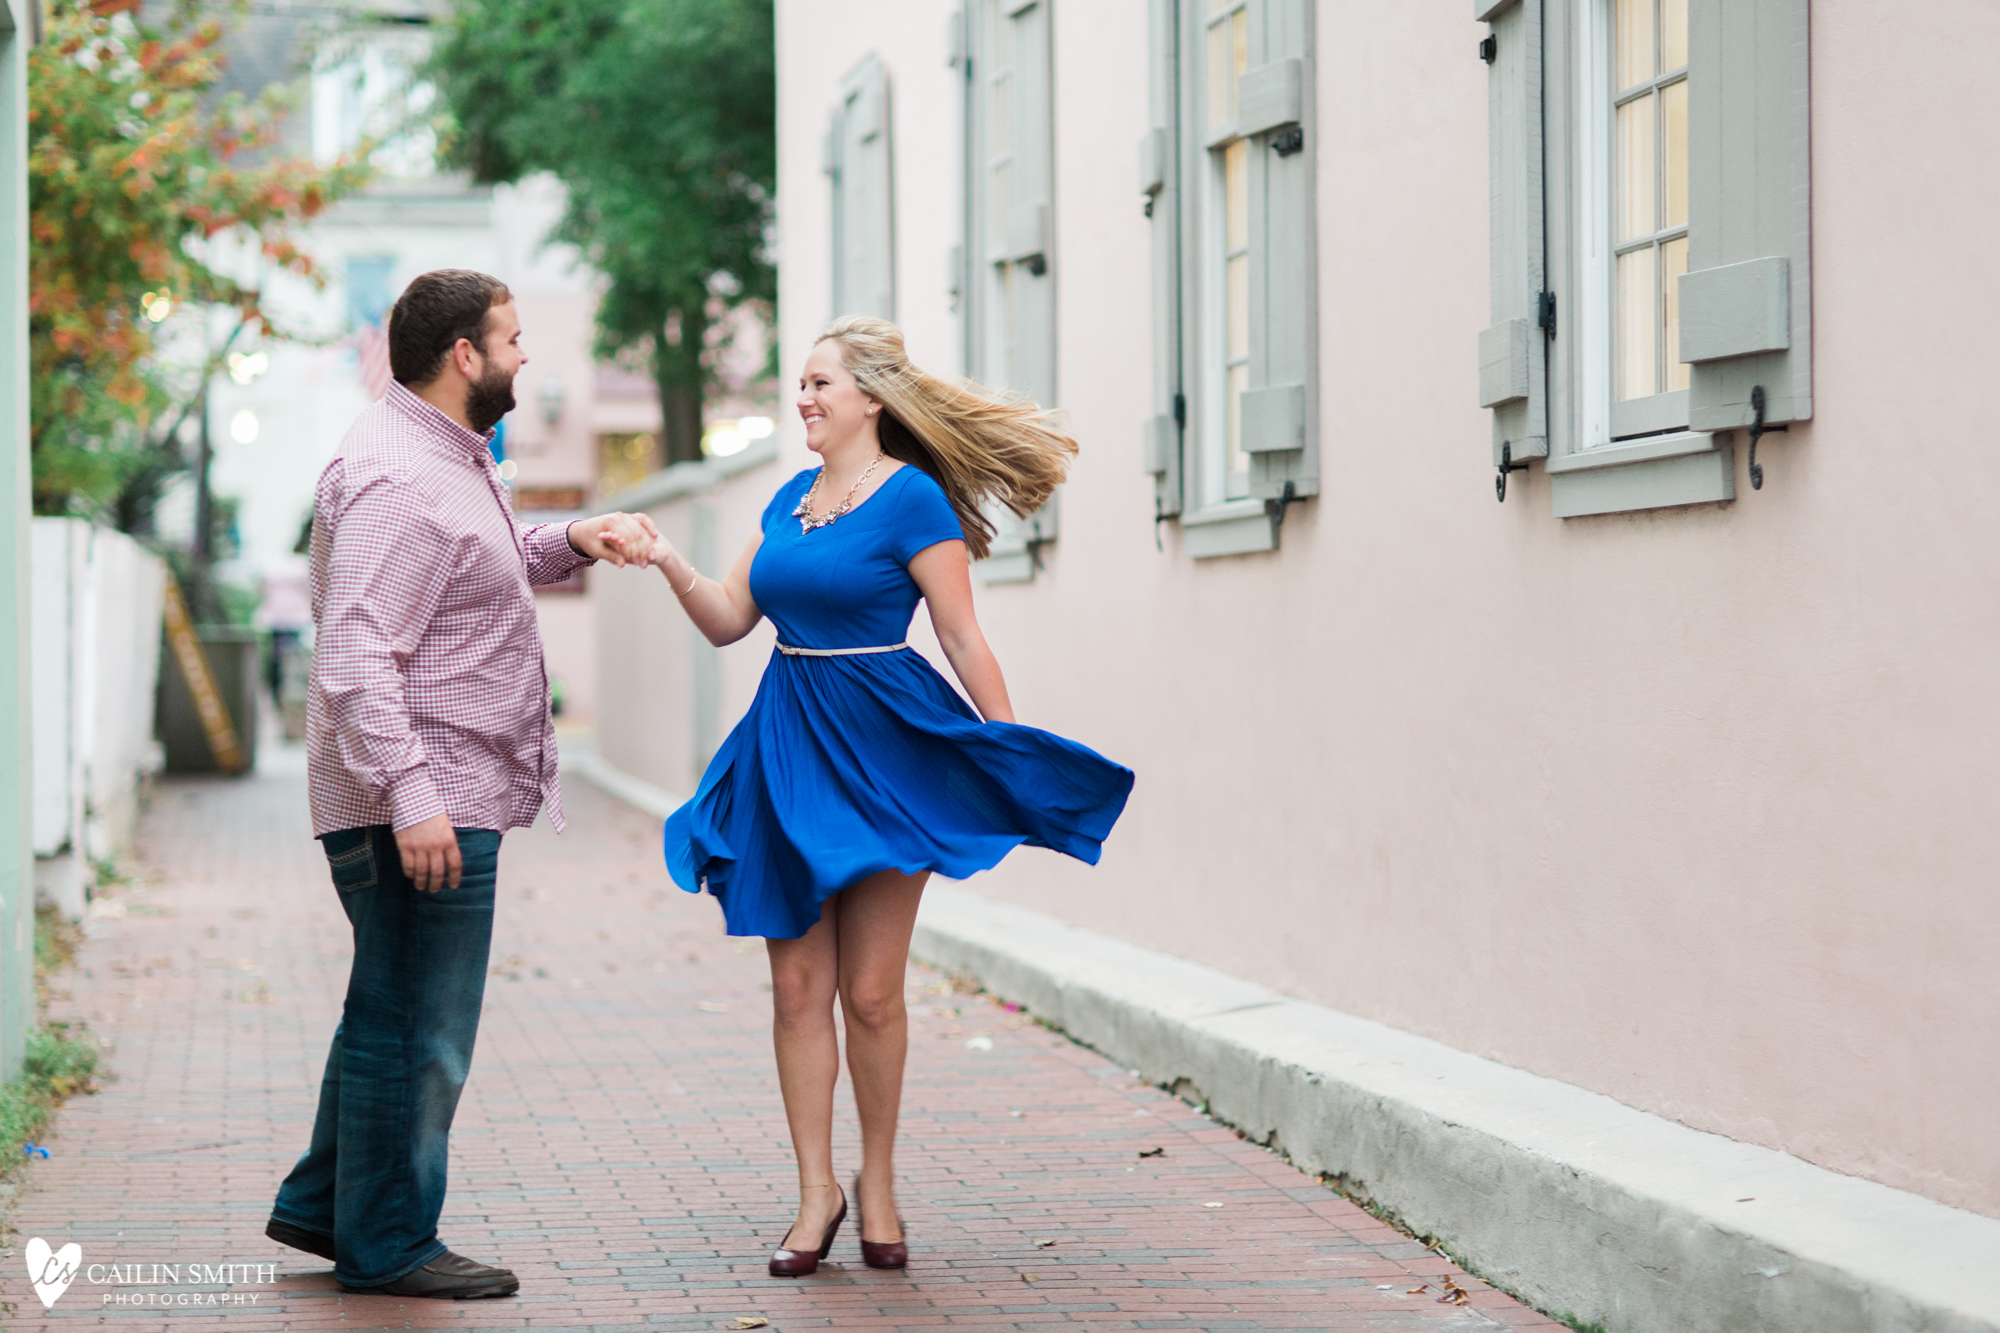 Shari_Brent_St_Augustine_Engagement_Photography_014.jpg